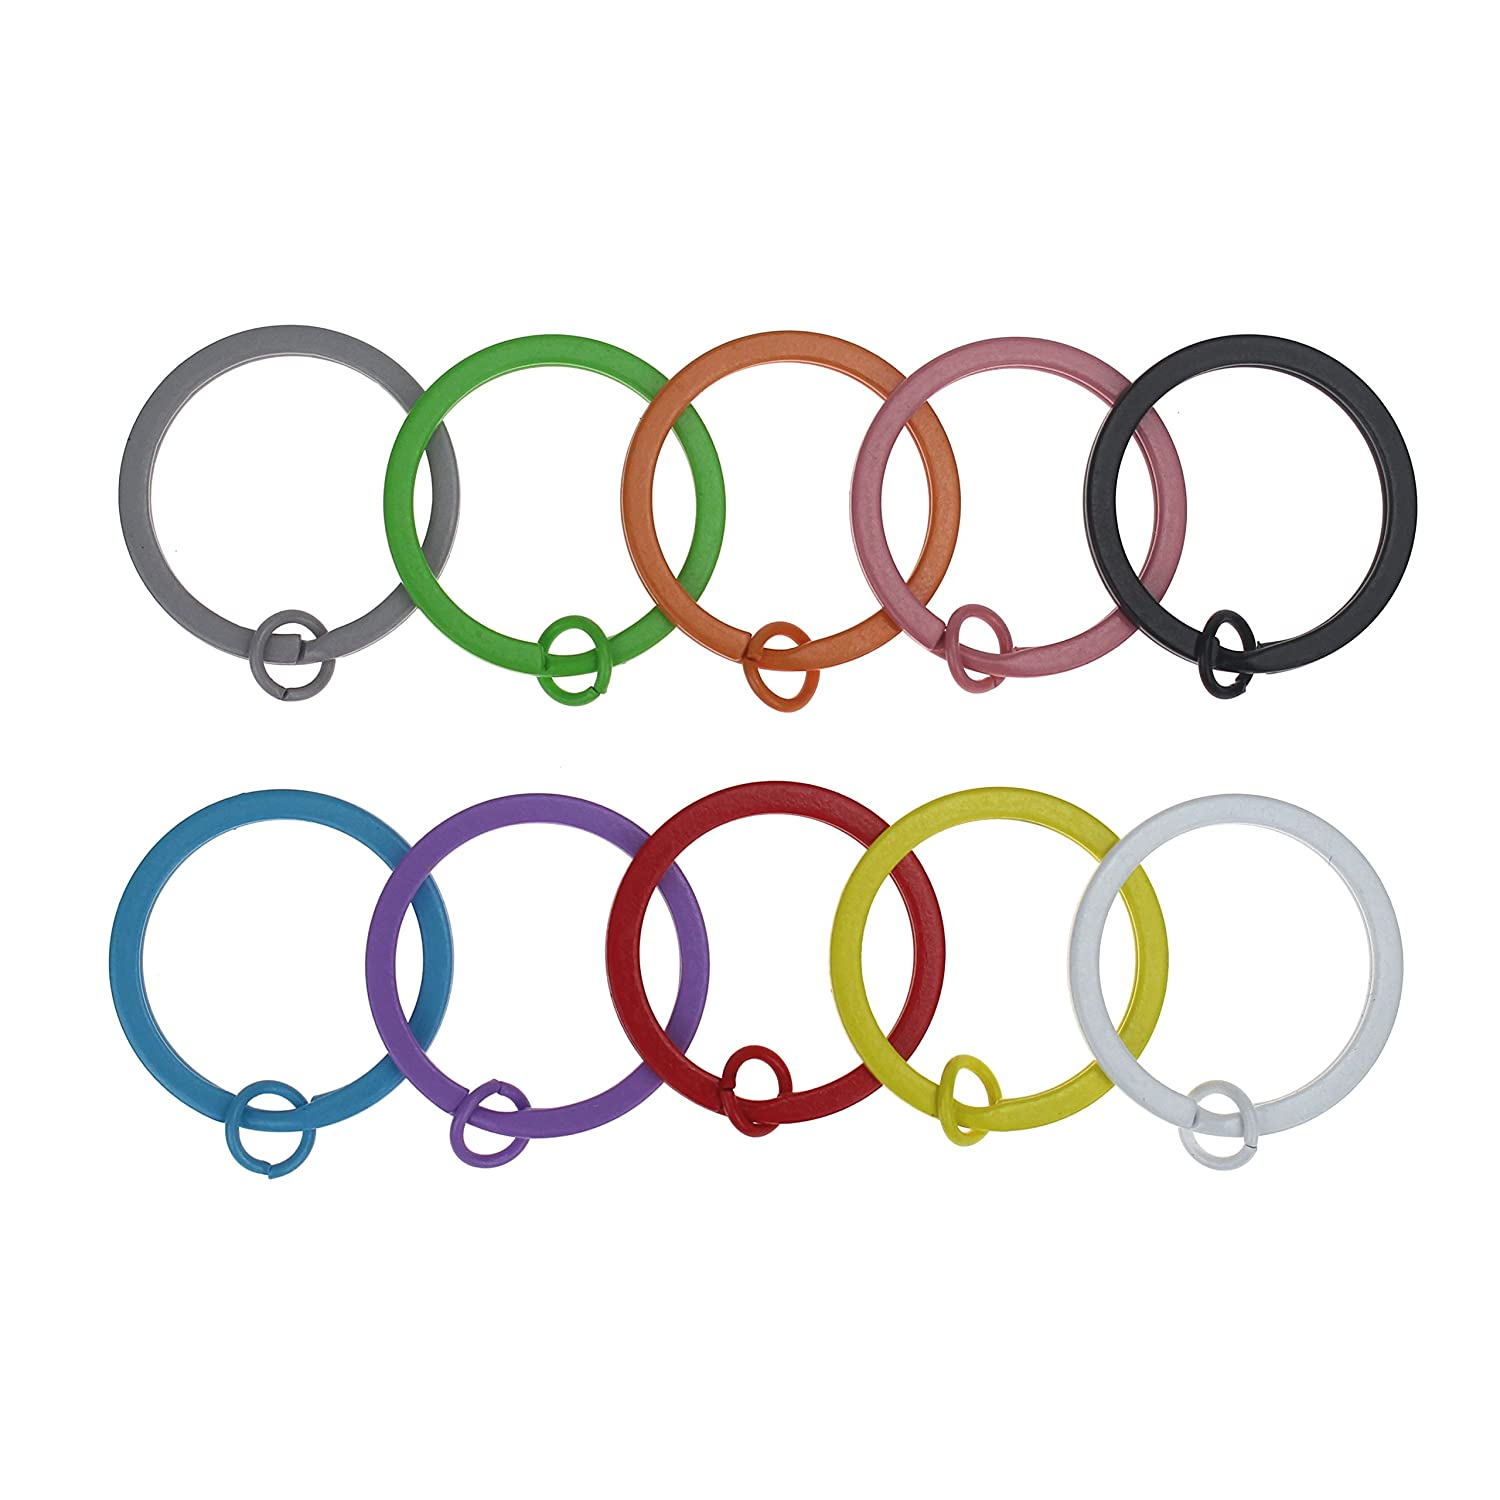 Udekit 25mm Colorful Split Metal Key Ring for Keys Organization (50 Pieces for 10 Colors, Each Color with 5 Pieces) Shuntiantai